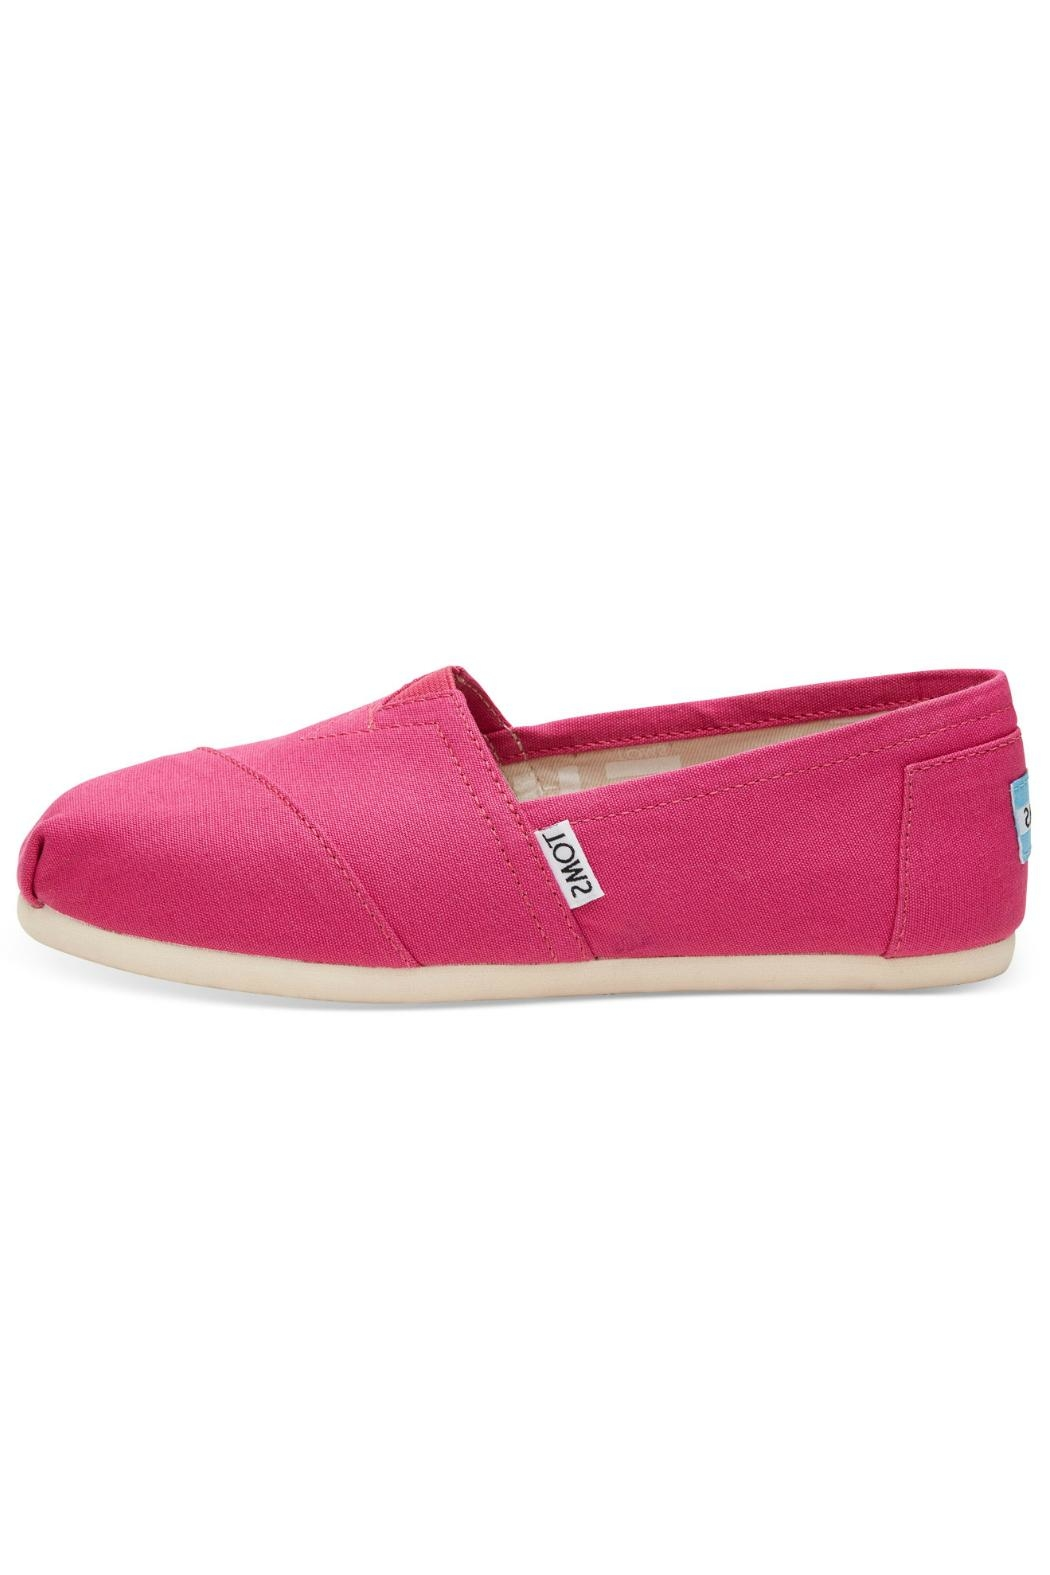 TOMS Pink Classic Toms - Main Image